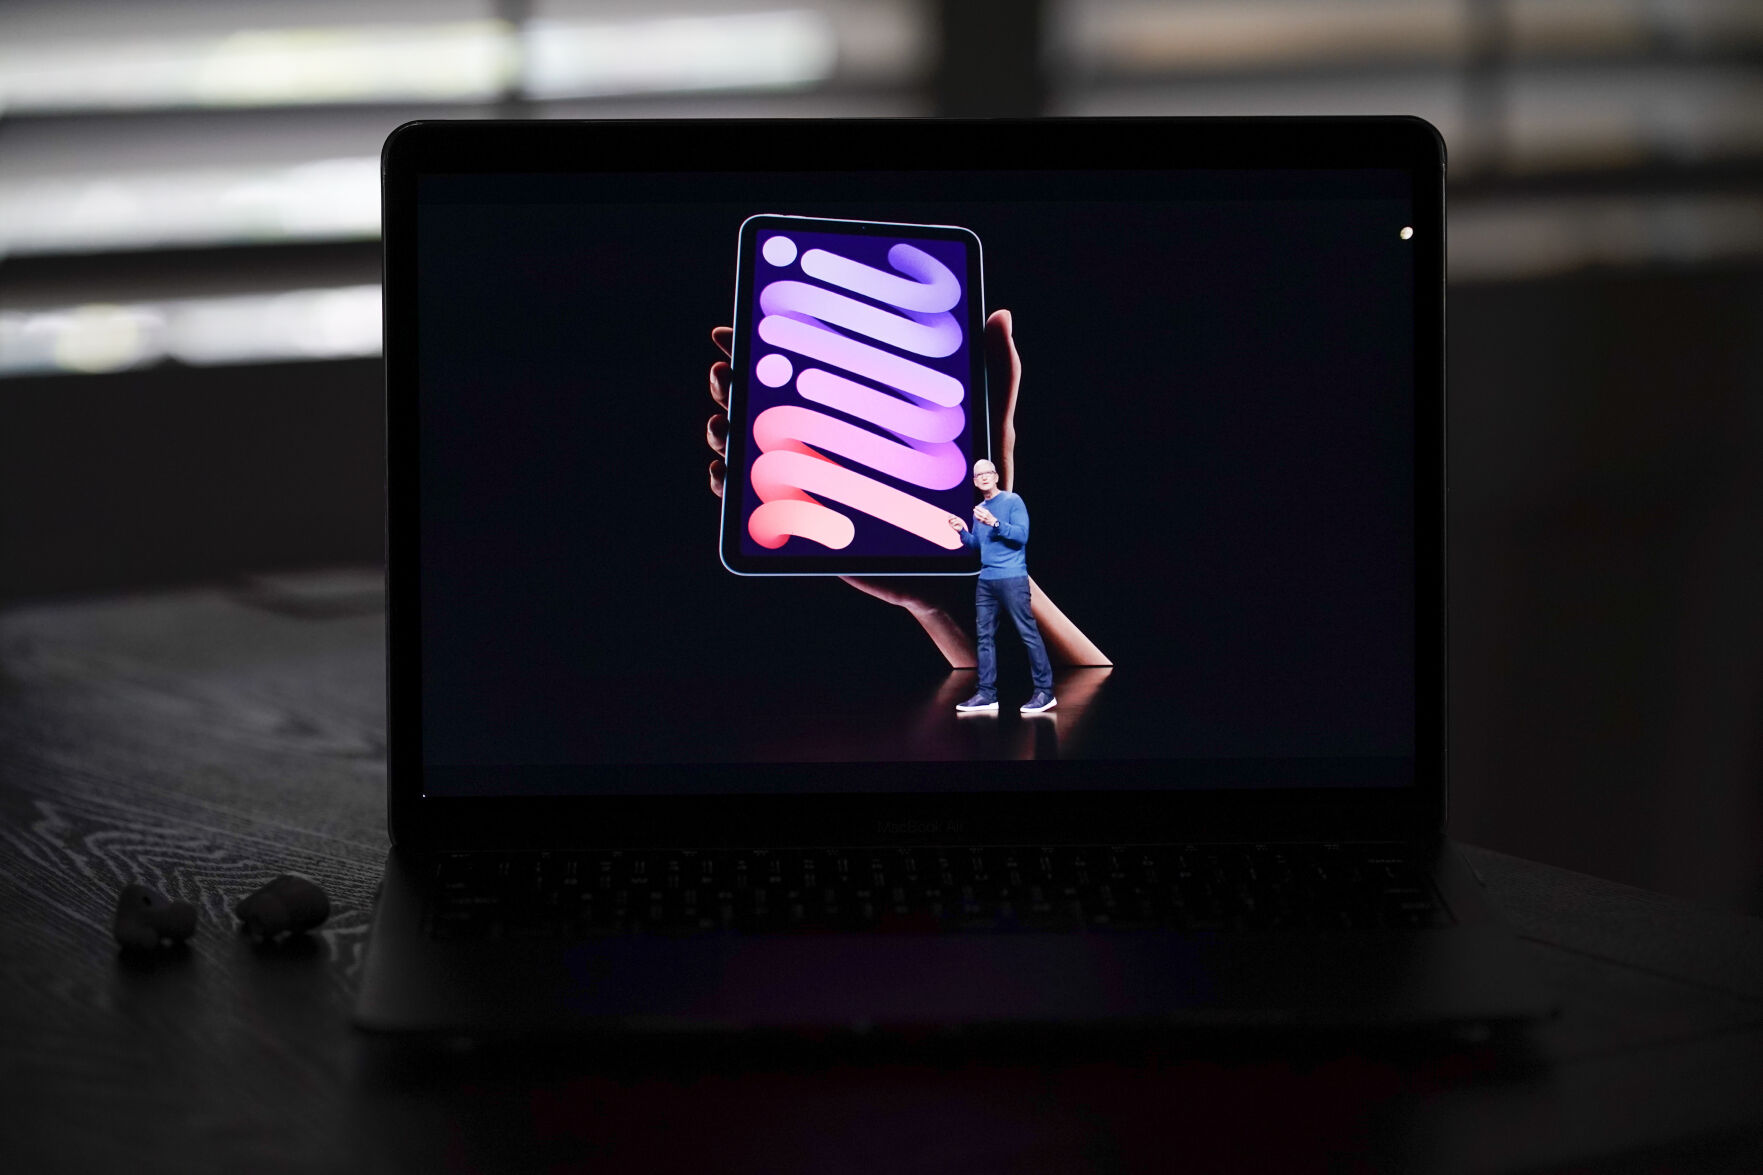 <p>Seen on the screen of a device in La Habra, Calif., Apple CEO Tim Cook introduces the new iPad mini during a virtual event held to announce new Apple products Tuesday, Sept. 14, 2021. (AP Photo/Jae C. Hong)</p>